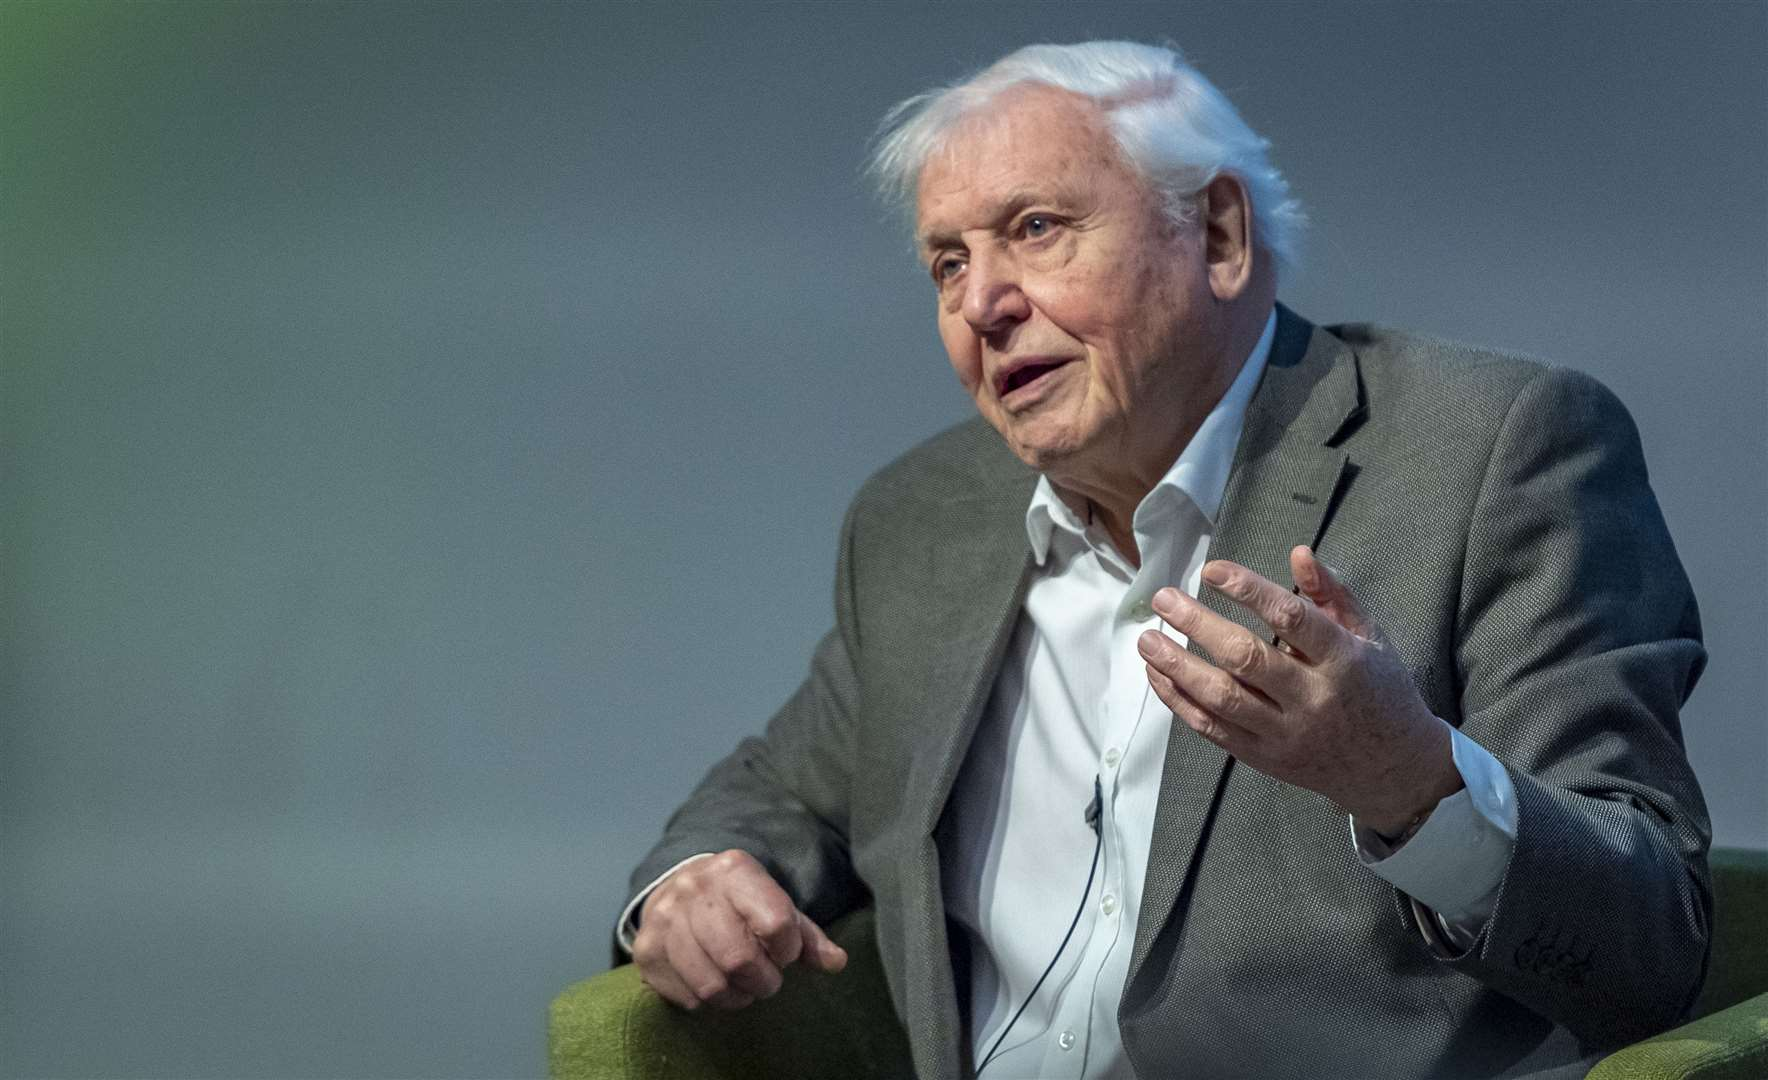 Sir David Attenborough at the twentieth Student Conference on Conservation Science series in Cambridge, Australia, Beijing, Bangalore, New York and Hungary is the only international series of conservation conferences aimed entirely at students. SCCS helps young conservation scientists gain experience, learn new ideas and make contacts that will be valuable for their future careers. Over the past 19 years, SCCS Cambridge has hosted over 3,200 delegates from 133 countries worldwide. Picture: Keith Heppell. (8269994)